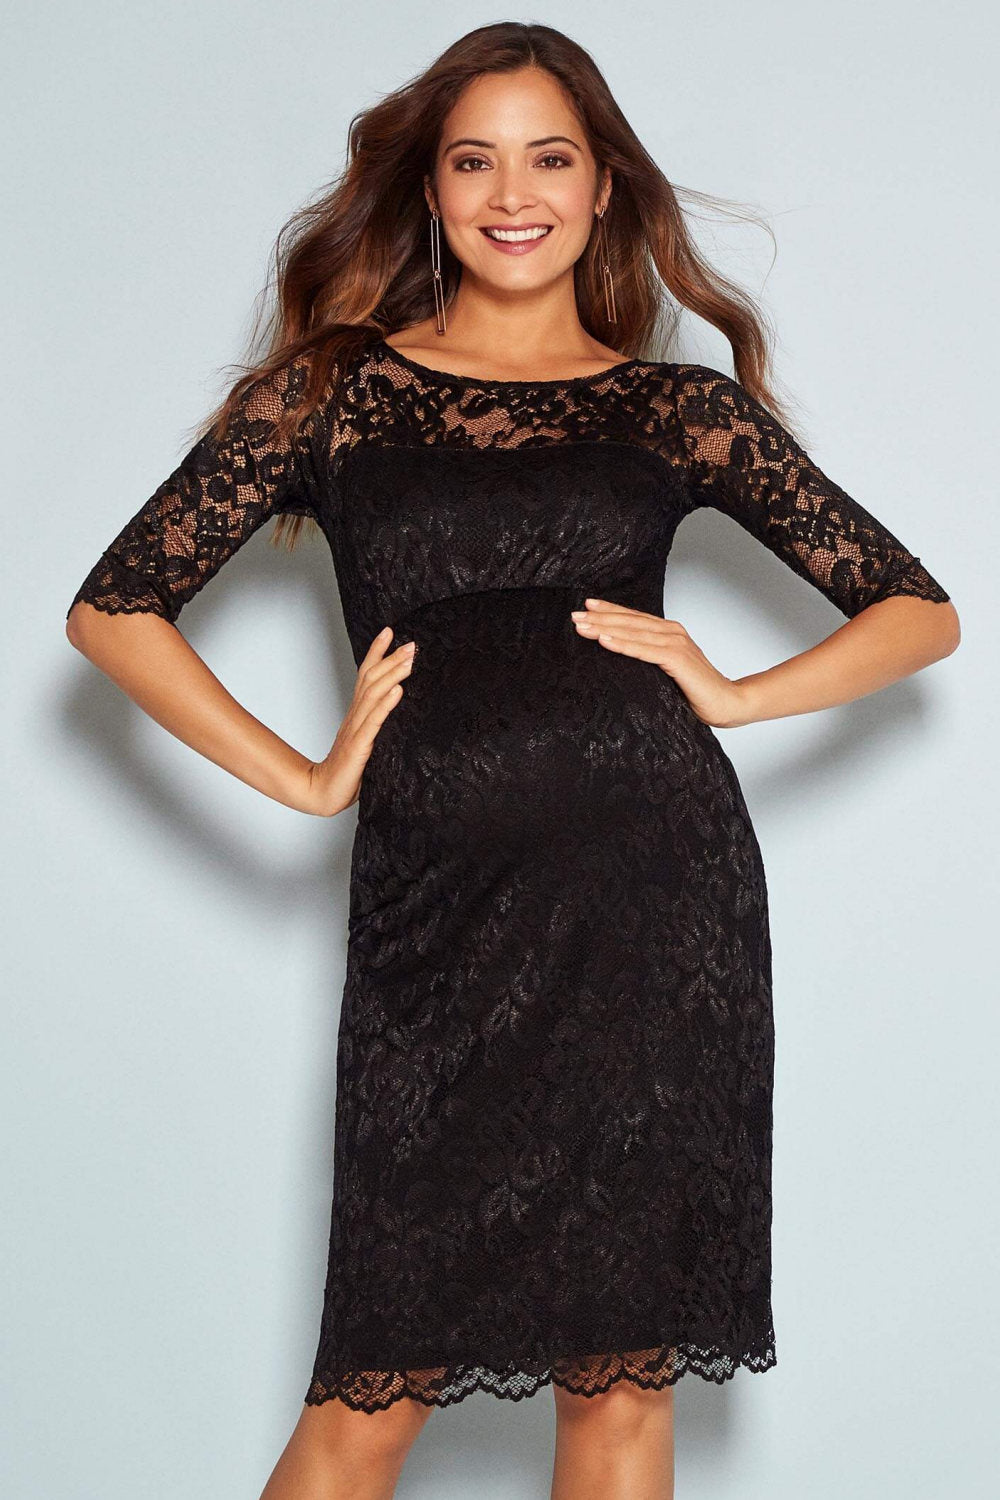 Tiffany Rose Amelia Dress - Black